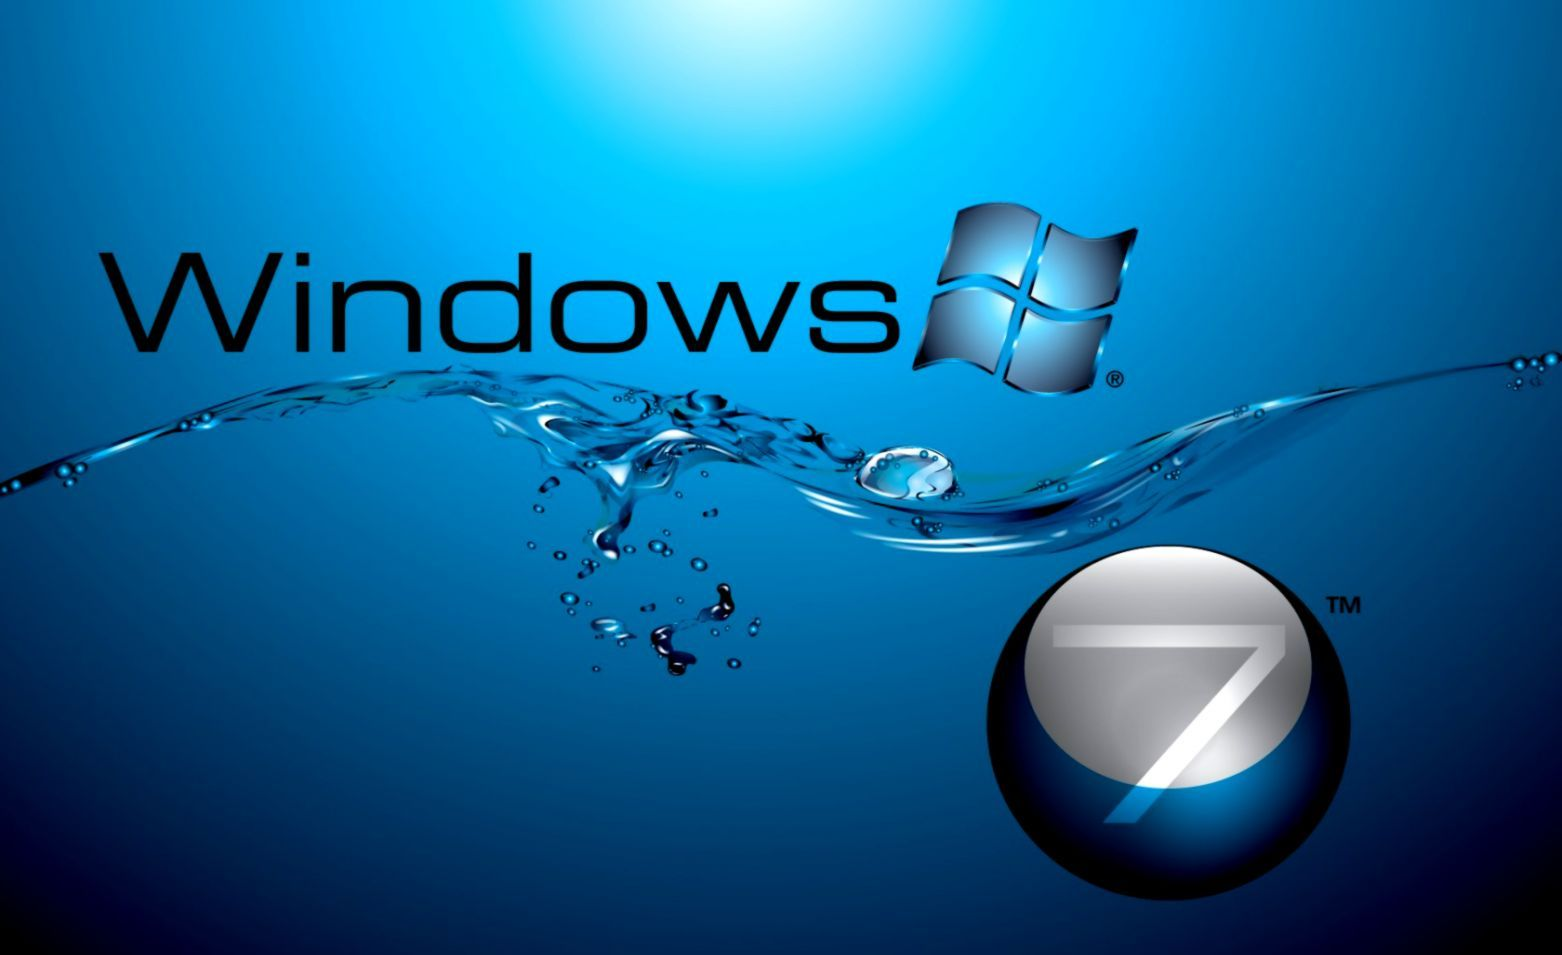 Undefined Windows 8 Wallpapers 1080p 34 Wallpapers Adorable Wallpapers Windows Wallpaper Moving Wallpapers 3d Desktop Wallpaper